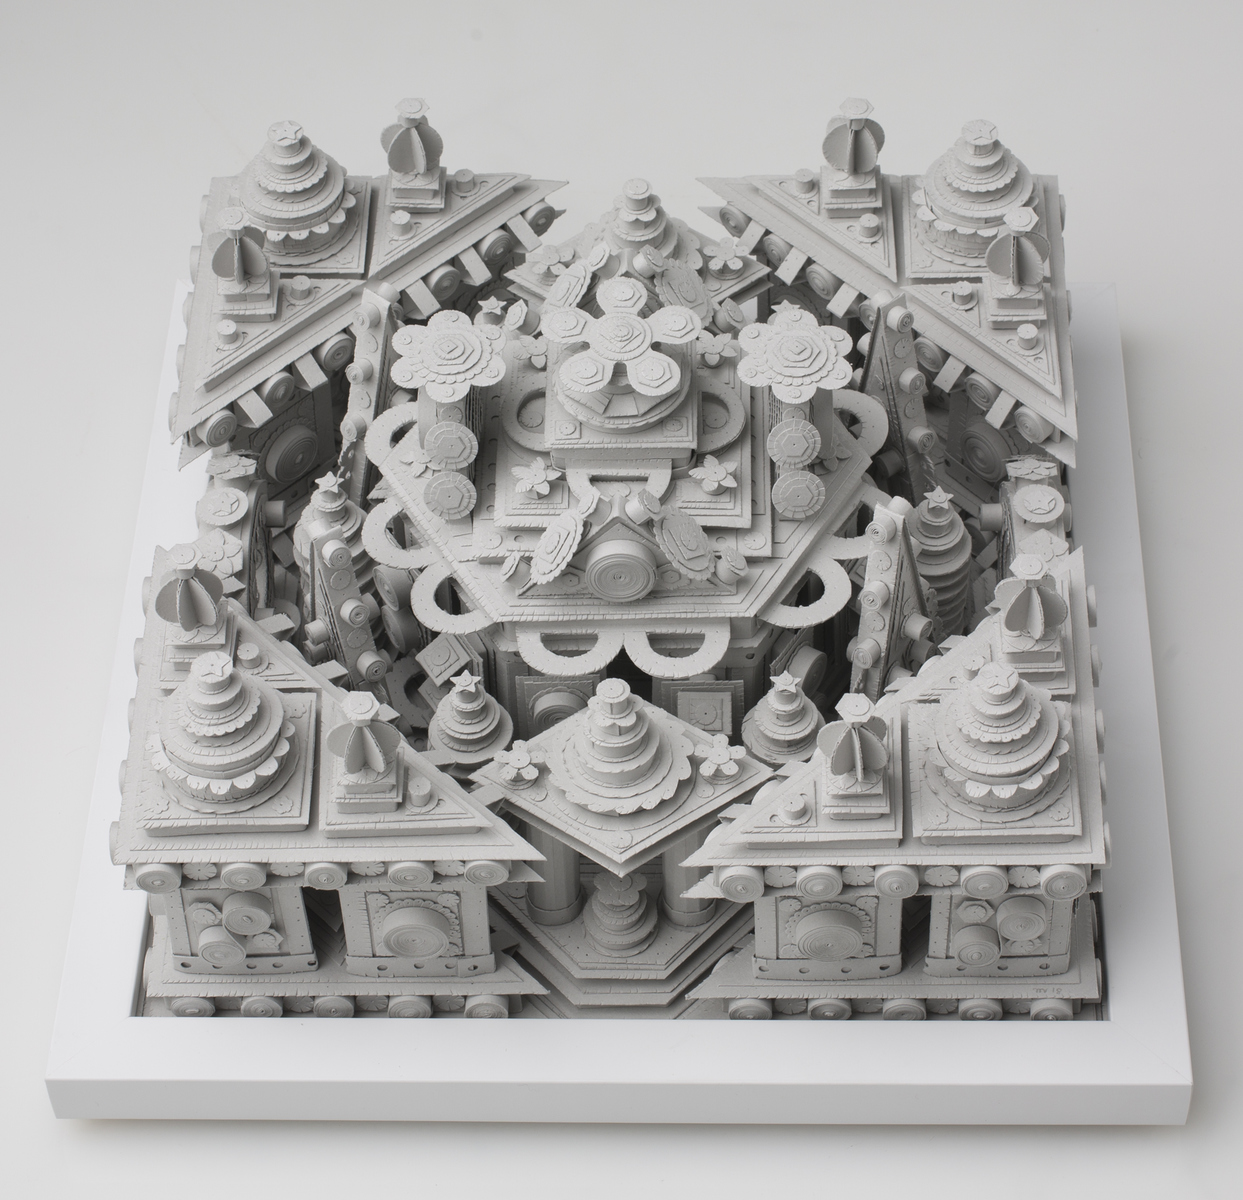 Paper Sculpture Untitled 8 (Metta)